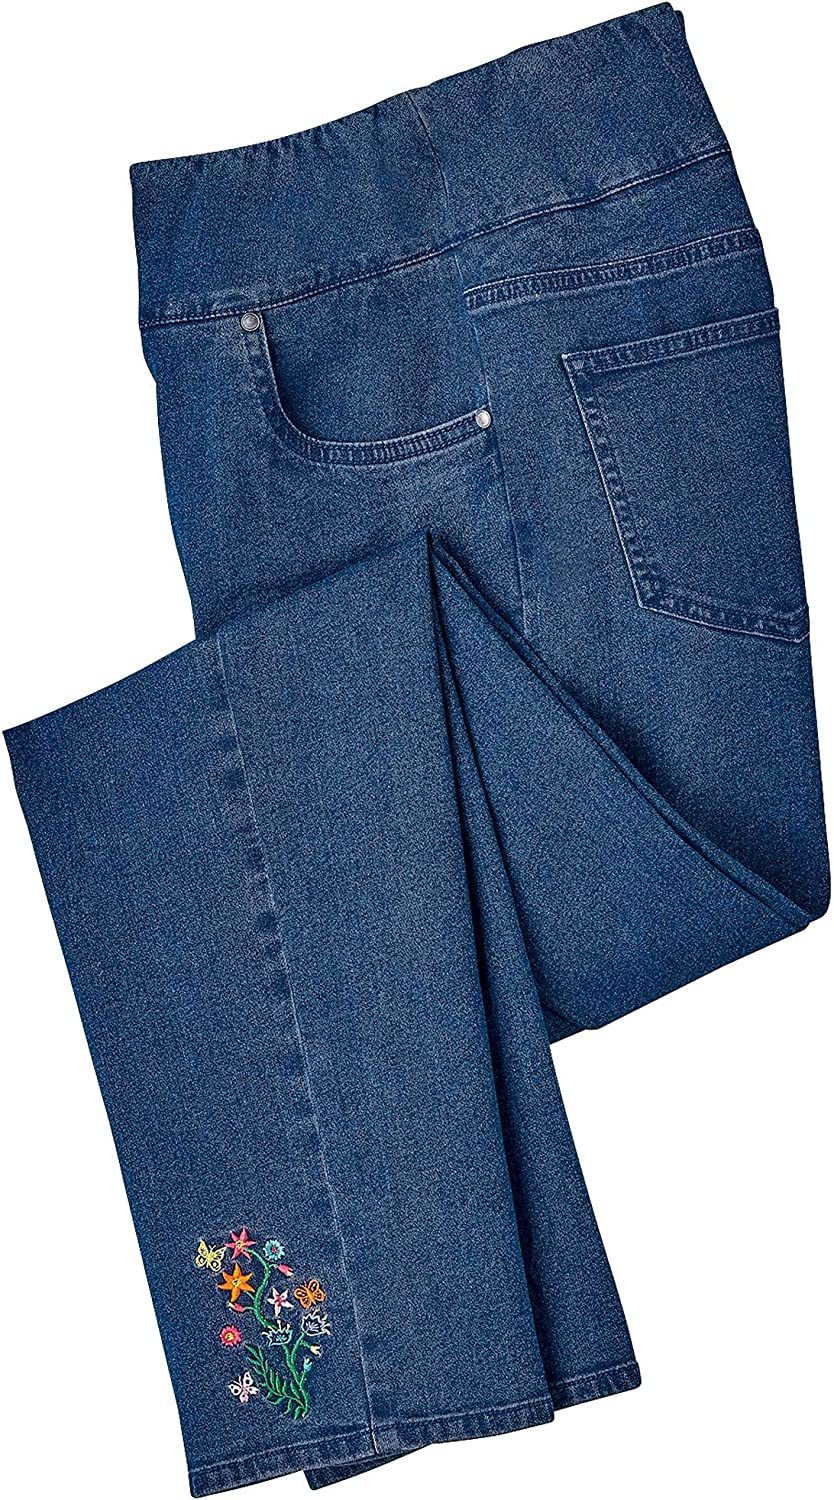 Sale special price AmeriMark Embroidered Jeans trust